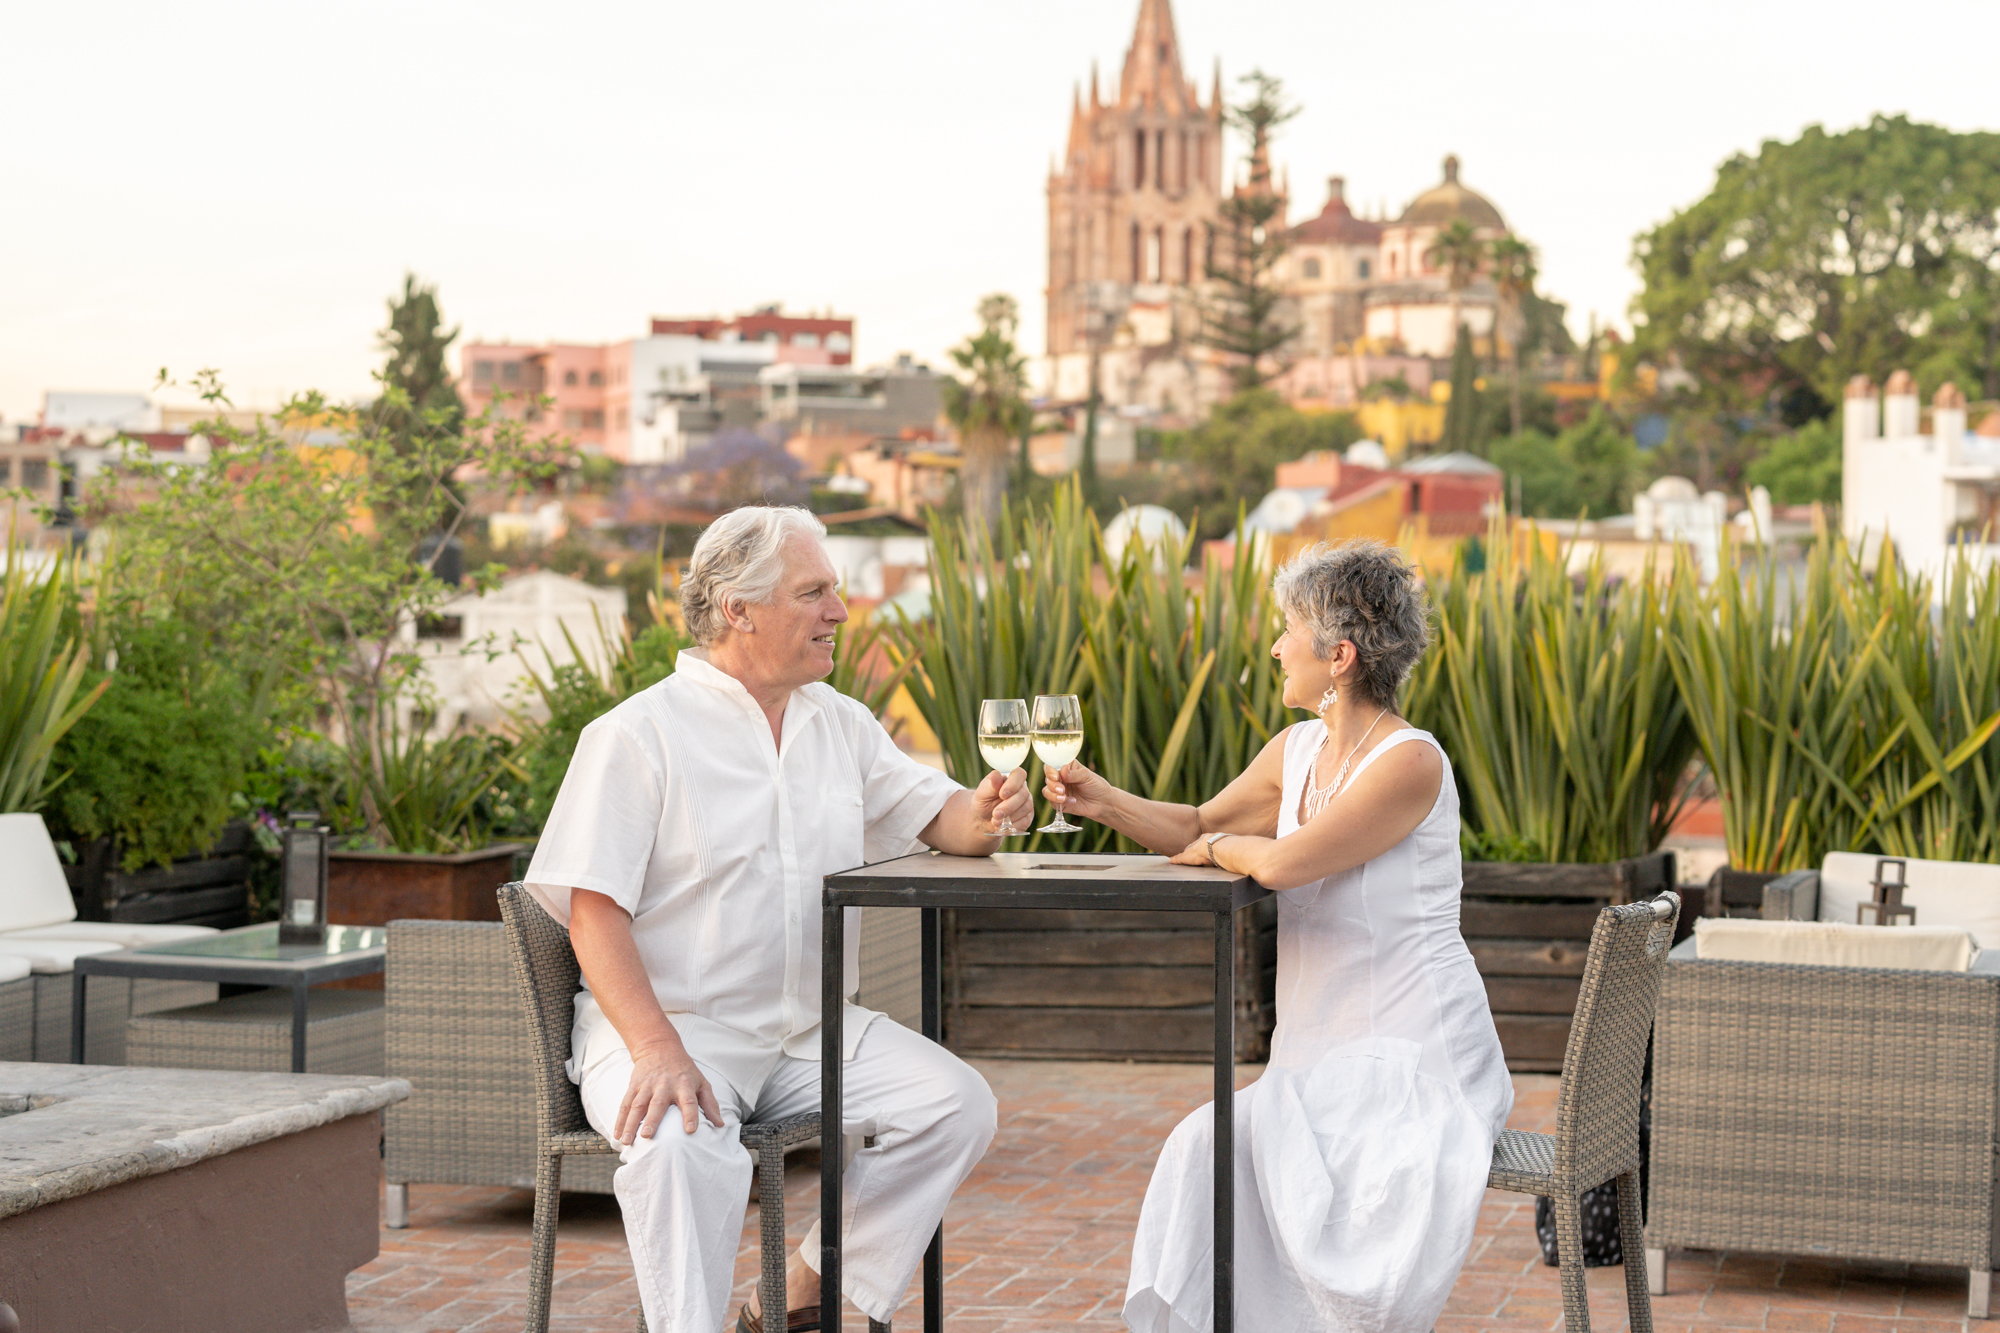 Photoshoot session in San Miguel de Allende with Suzanne and Leo-61.jpg